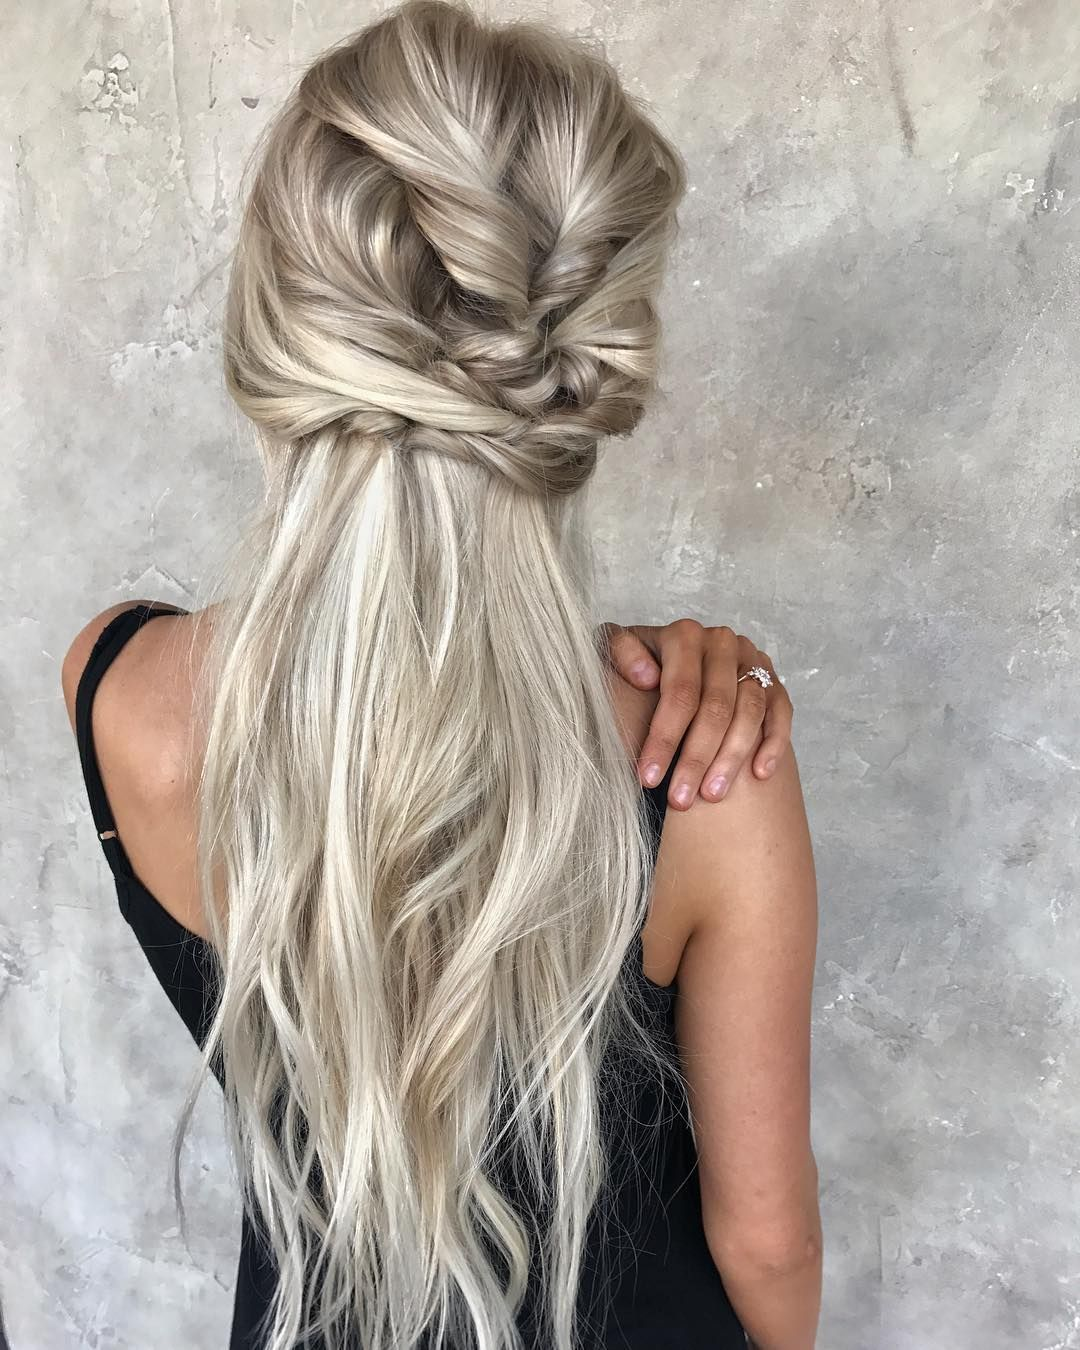 10 Gorgeous Messy Braided Long Hairstyle Ideas - NiceStyles